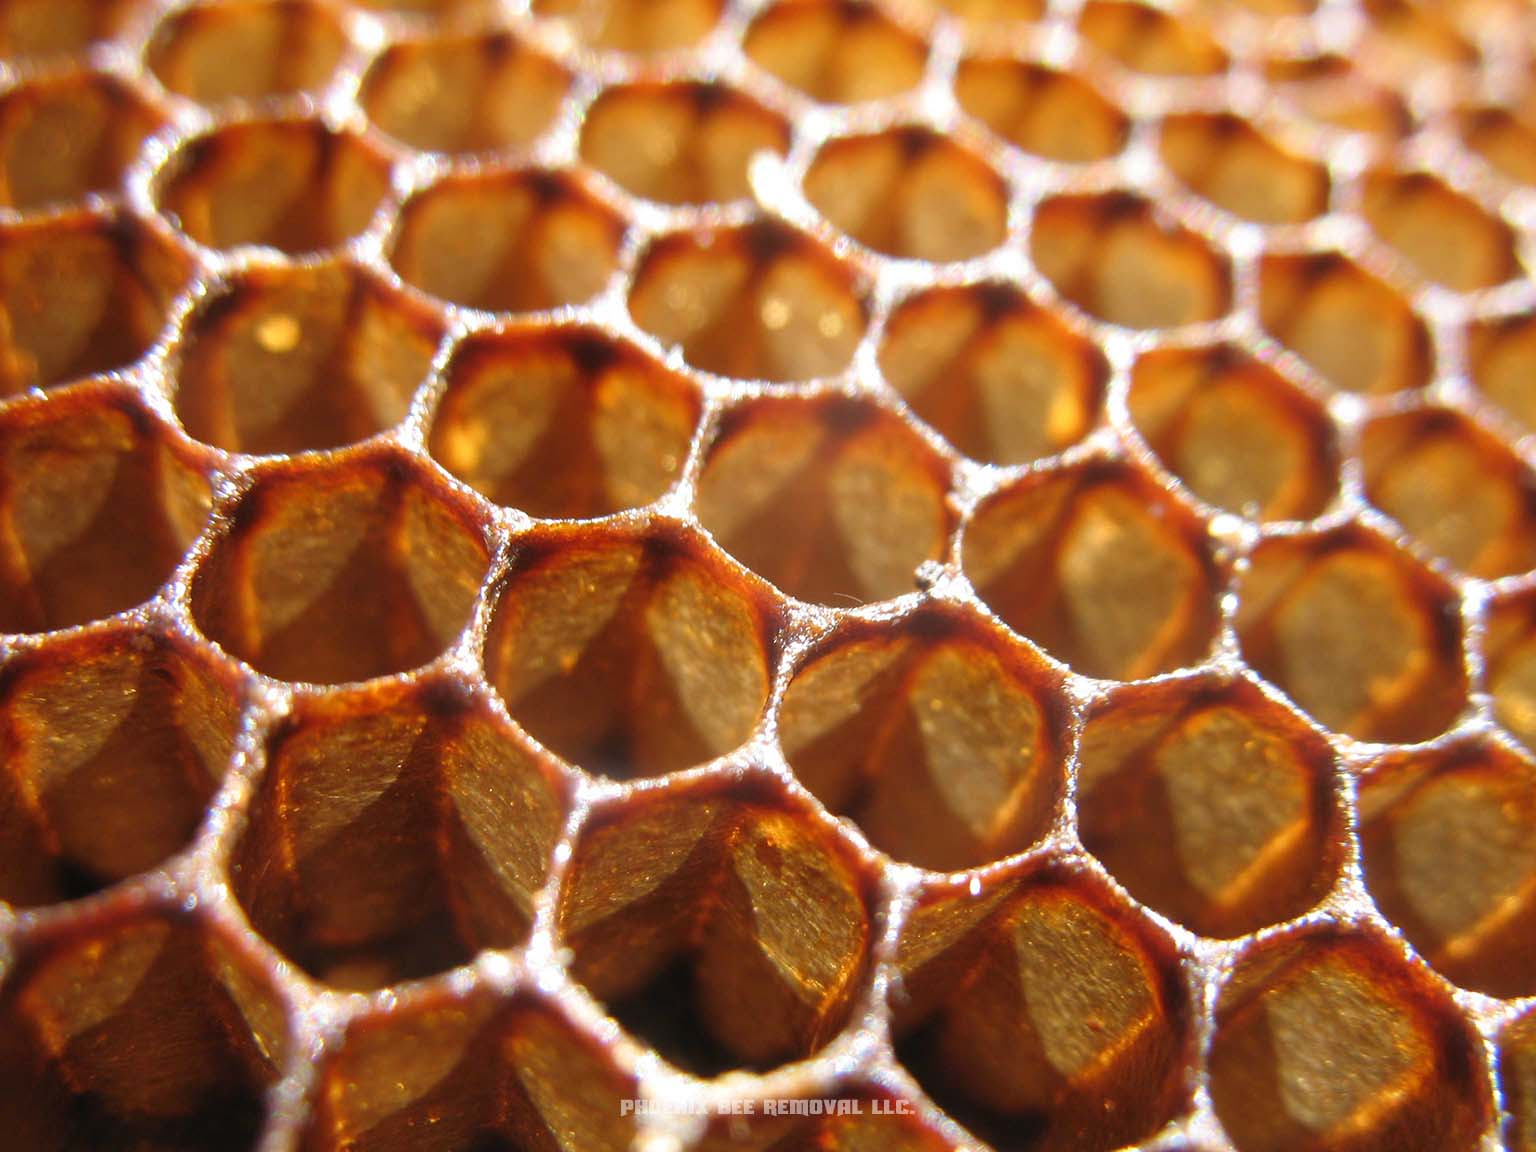 Full Honeycomb Removal and Repair Services